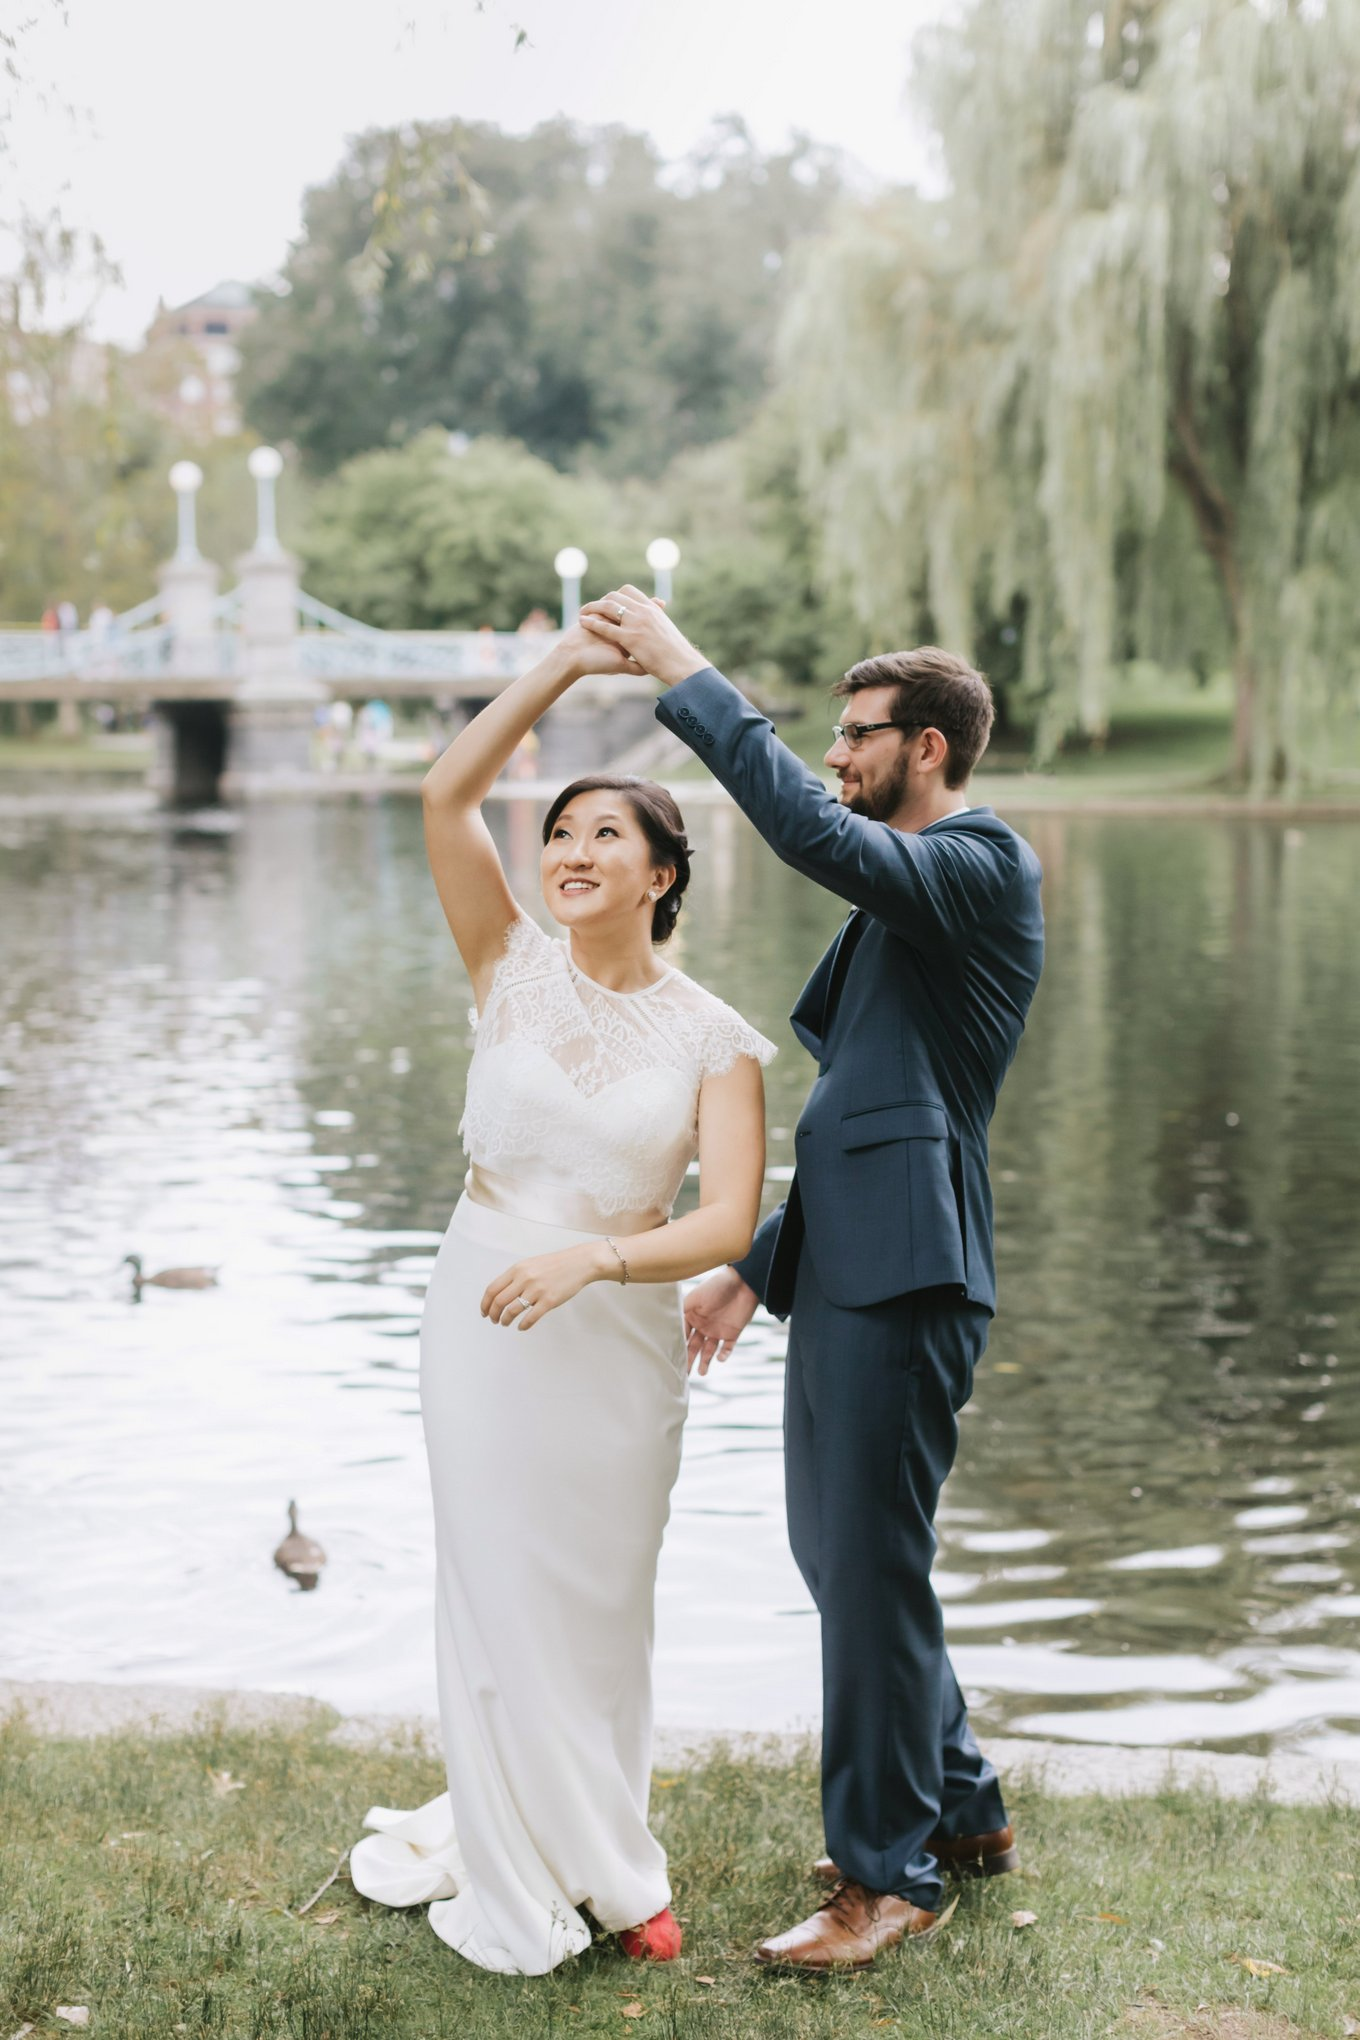 Boston-City-Hall-Elopement-Wedding-Public-Garden-Beacon-Hill-15.JPG